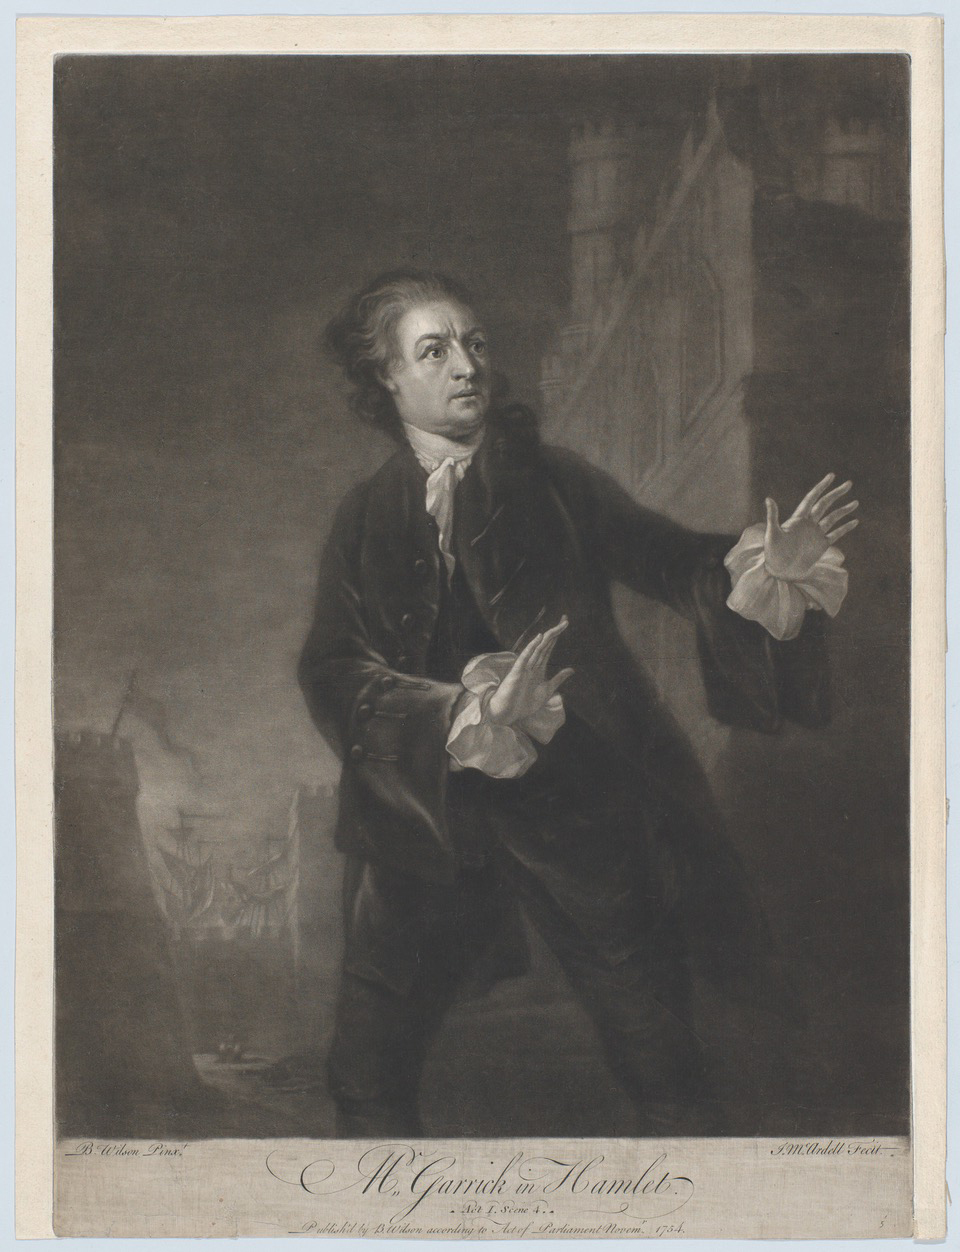 """Promotional materials for """"A Puppeteer with the Palsy Performs Scenes from Shakespeare"""" utilized the iconic image of David Garrick in Hamlet (Shakespeare, Act 1, Scene 4), 1754, engraved by James McArdell."""